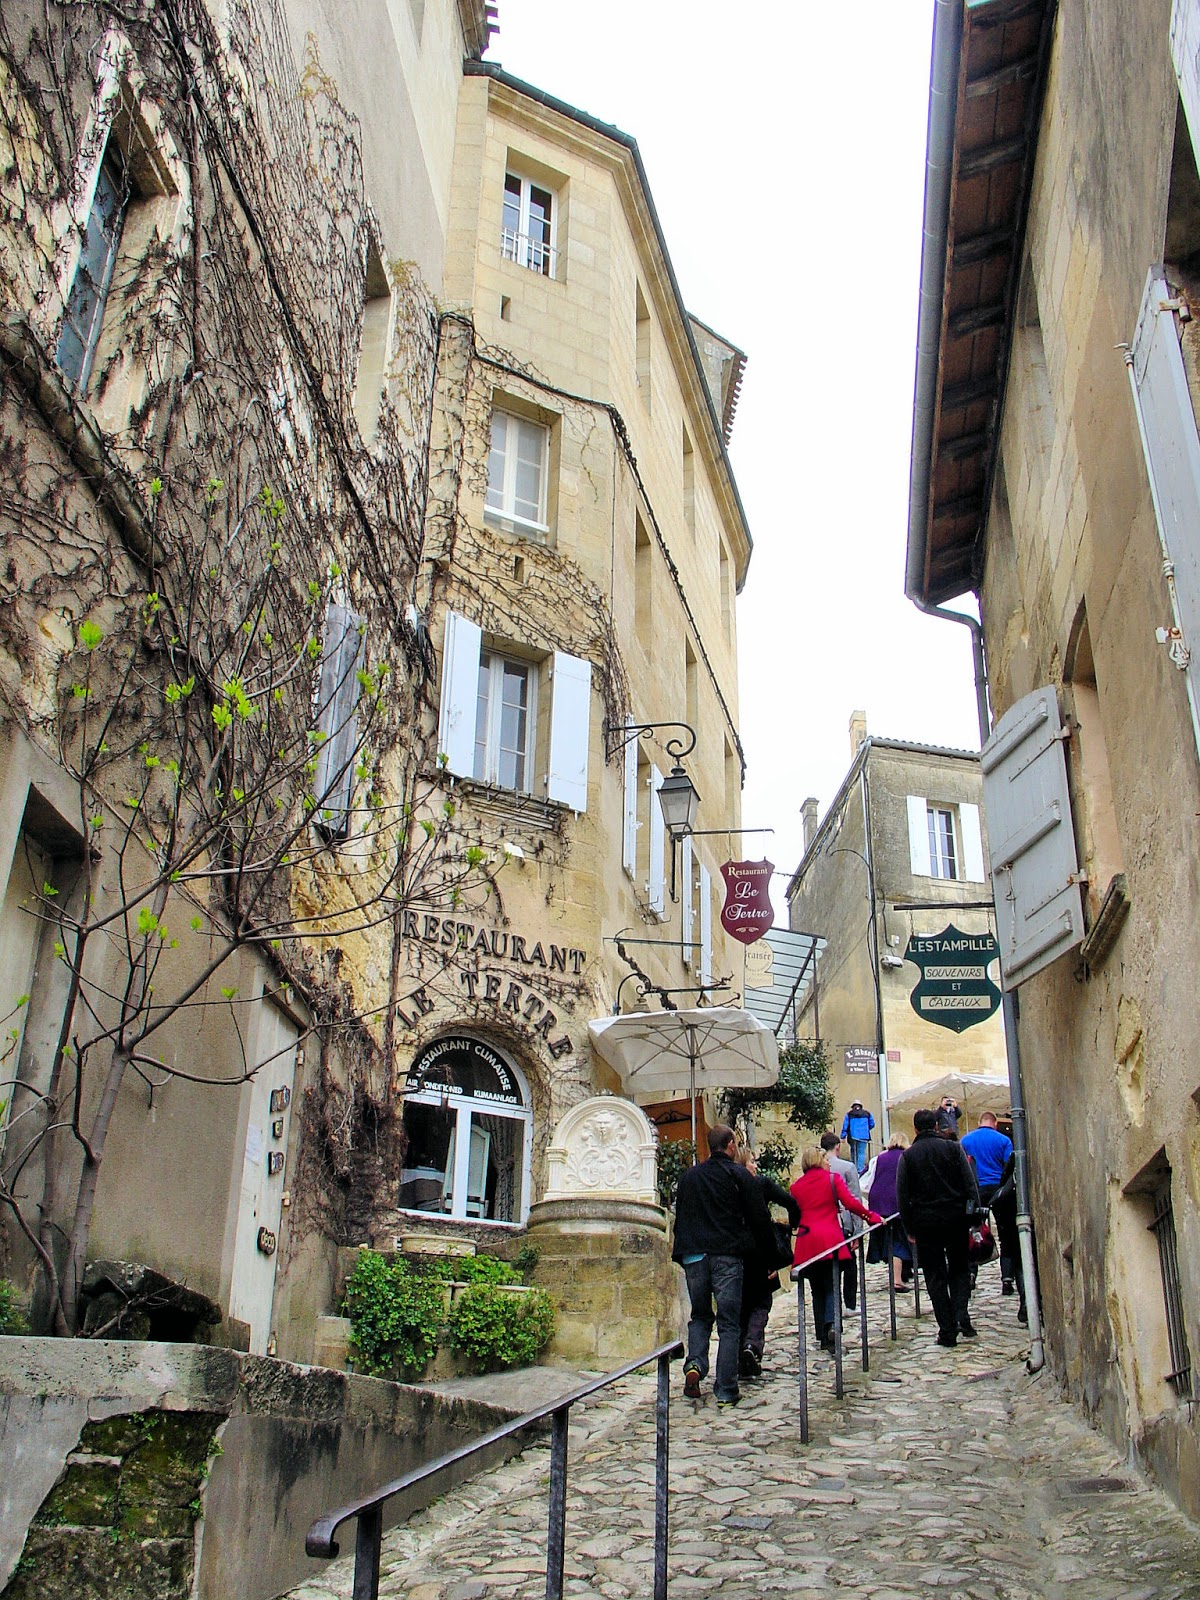 Look at the slope of this cobbled hill in Saint-Émilion. Quaint narrow lanes lined with medieval architecture are home to enchanting cafés and shops.